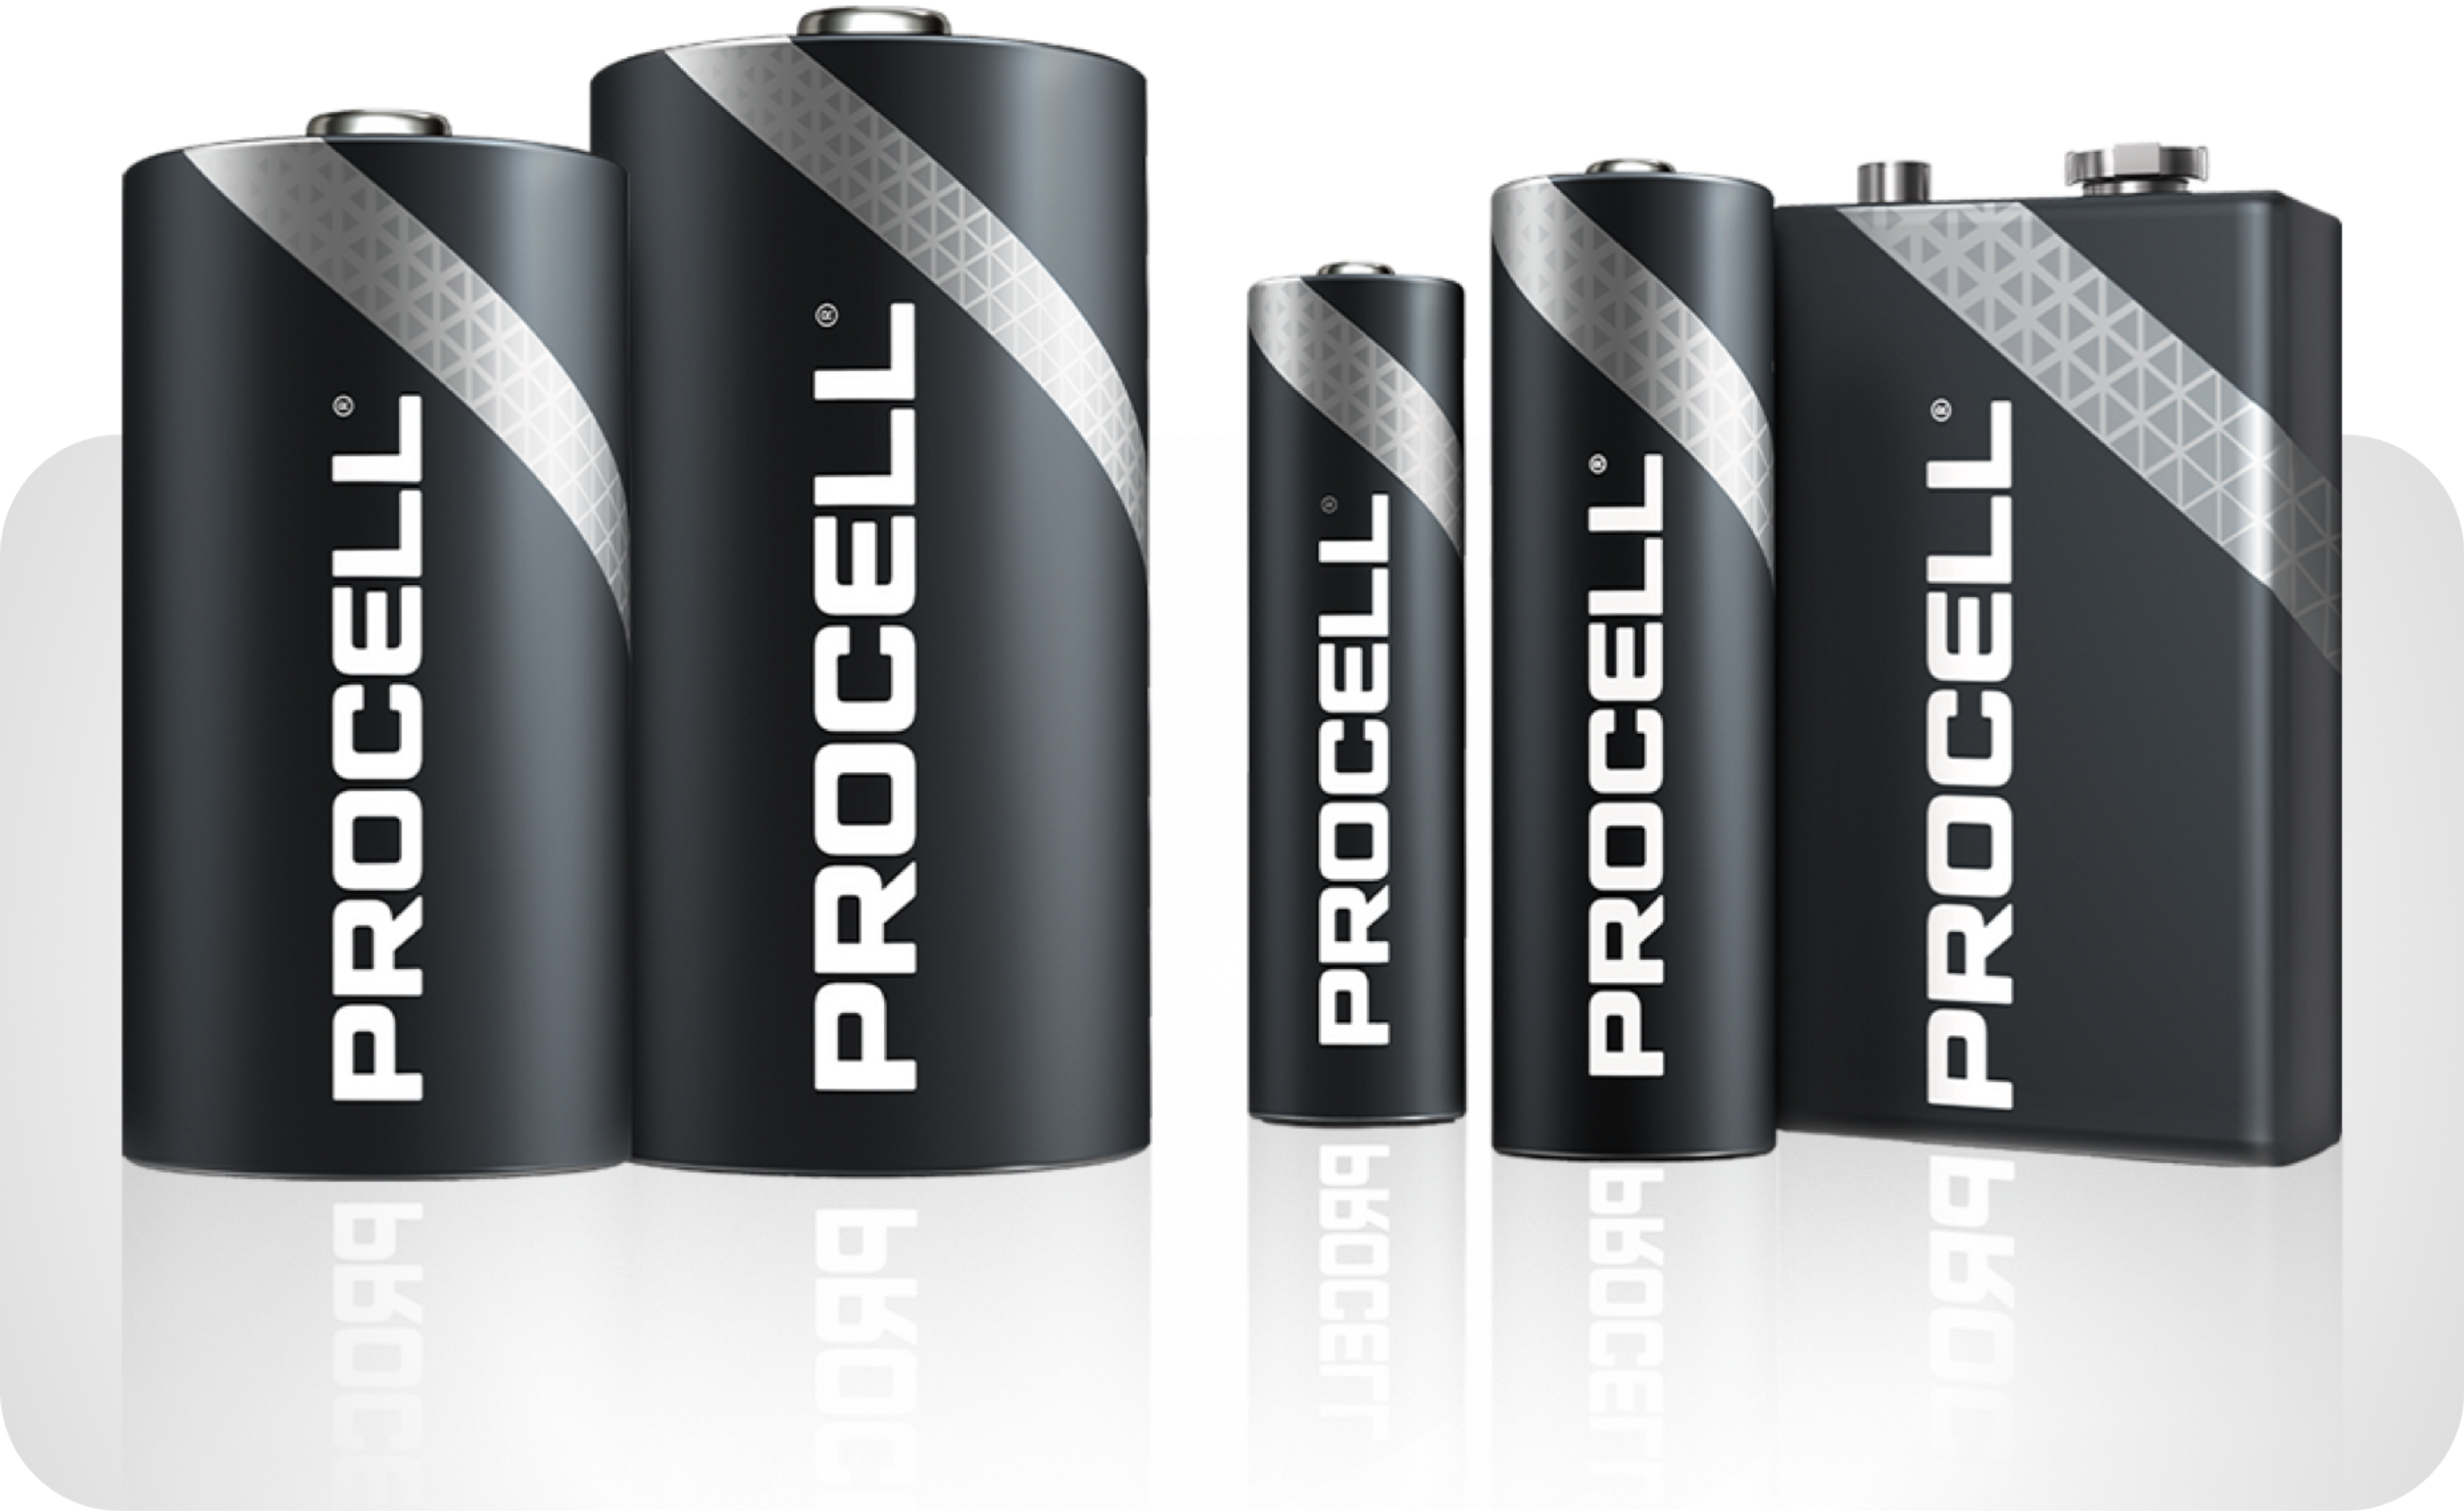 Image of various Duracell Coppertop batteries in popular sizes: AA, AAA, C, D and 9-volt.